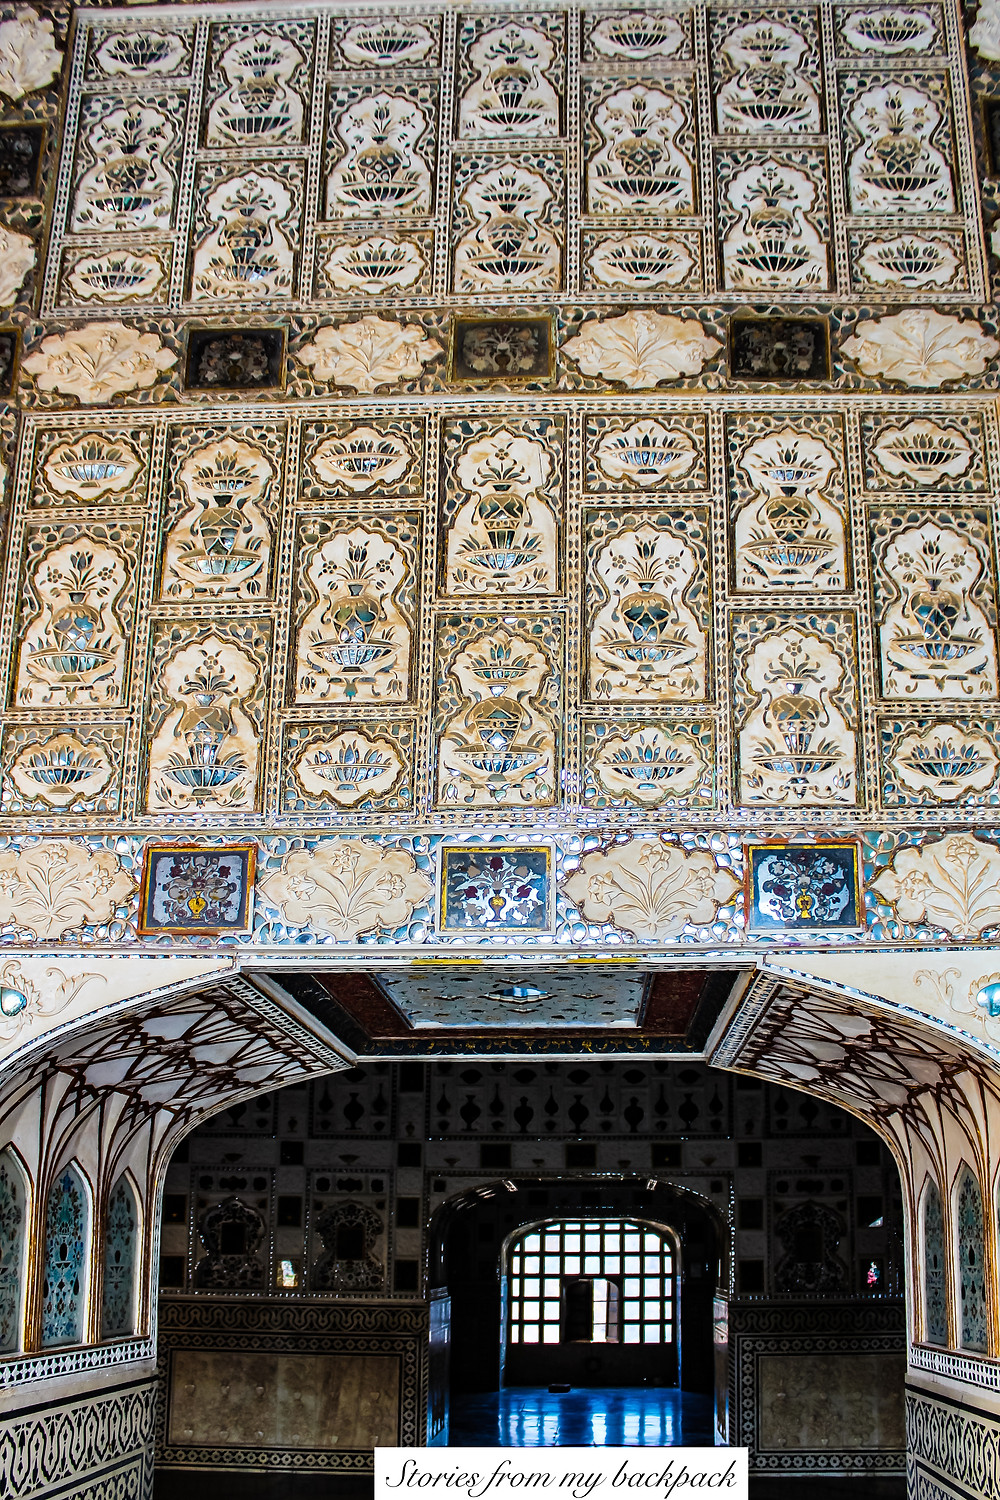 amer fort, amber fort, Rajasthan fort, Jaipur, things to do in Jaipur, Indian architecture, sheesh mahal, mirror palace